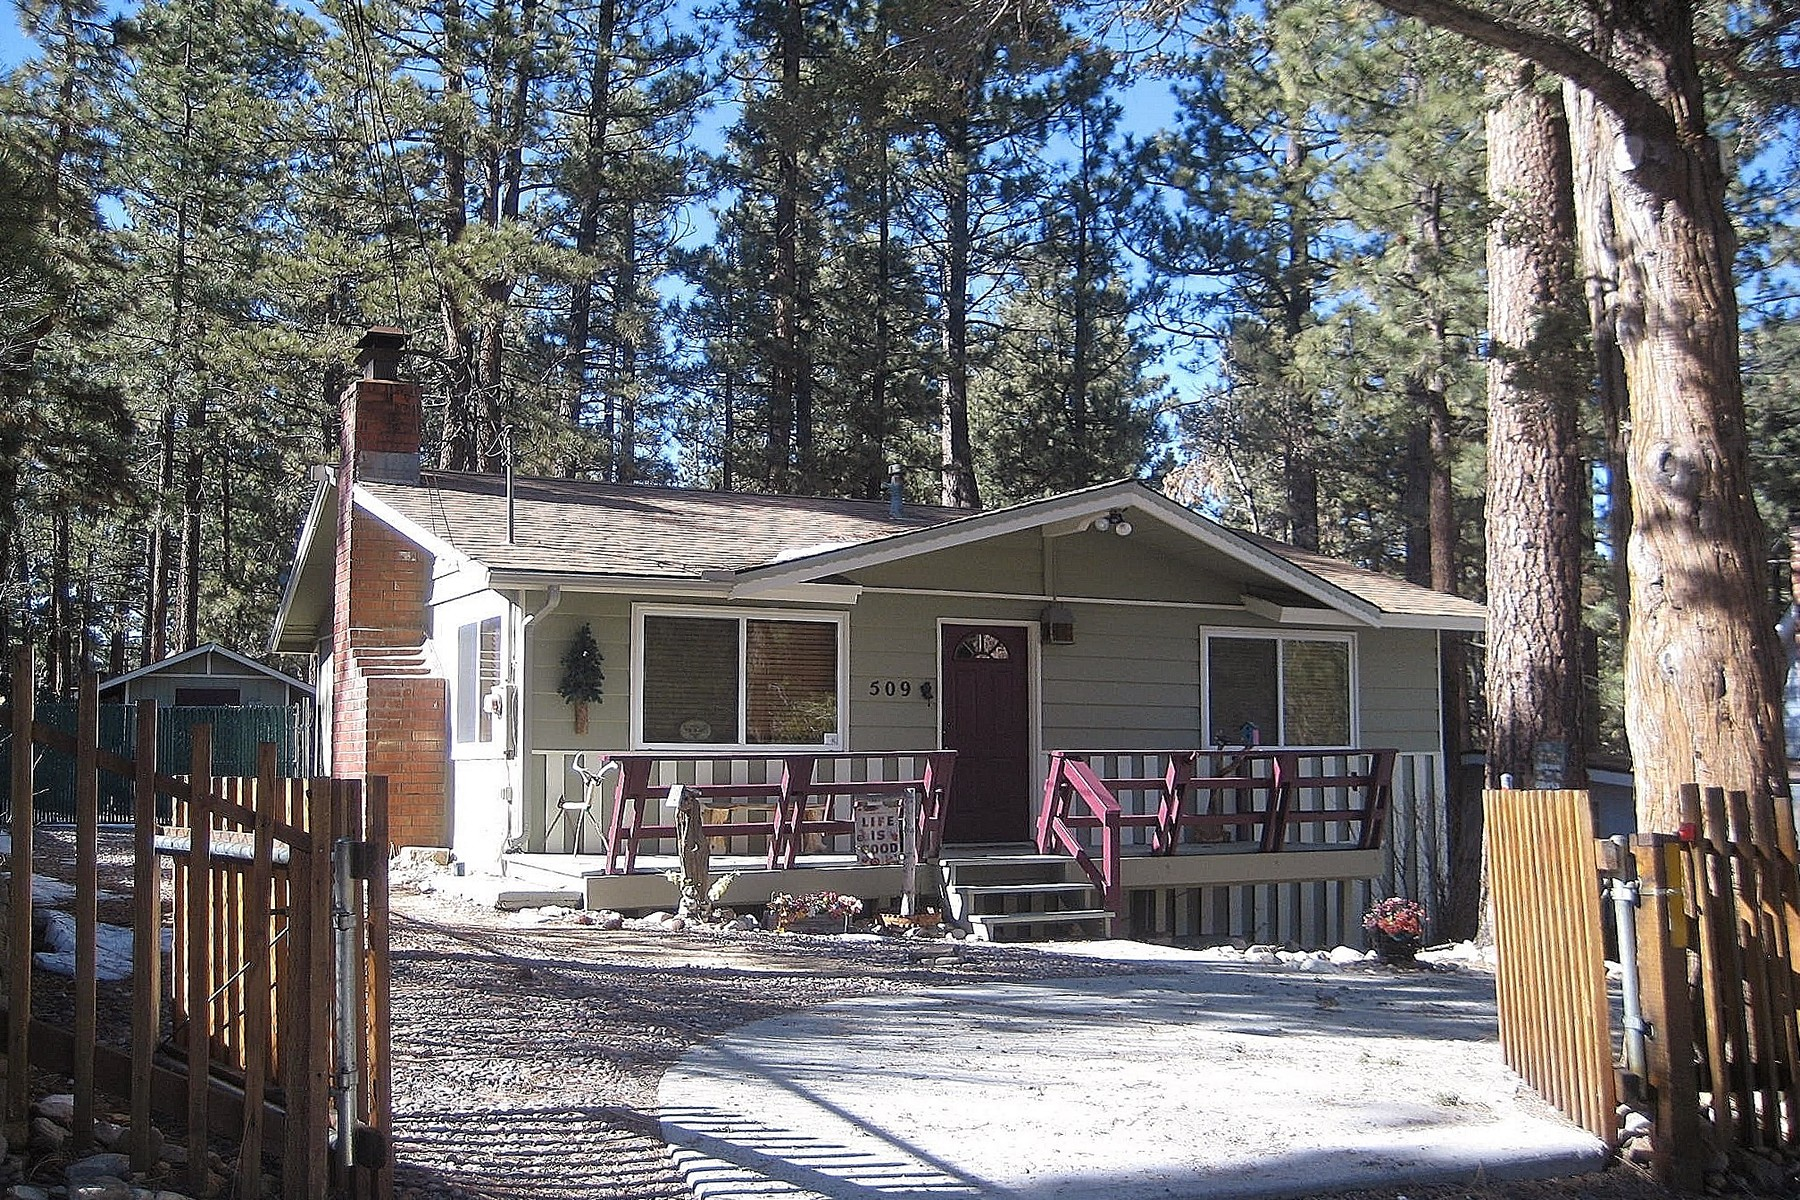 Single Family Home for Sale at Big Bear 509 Beaumont Lane Big Bear City, California 92314 United States